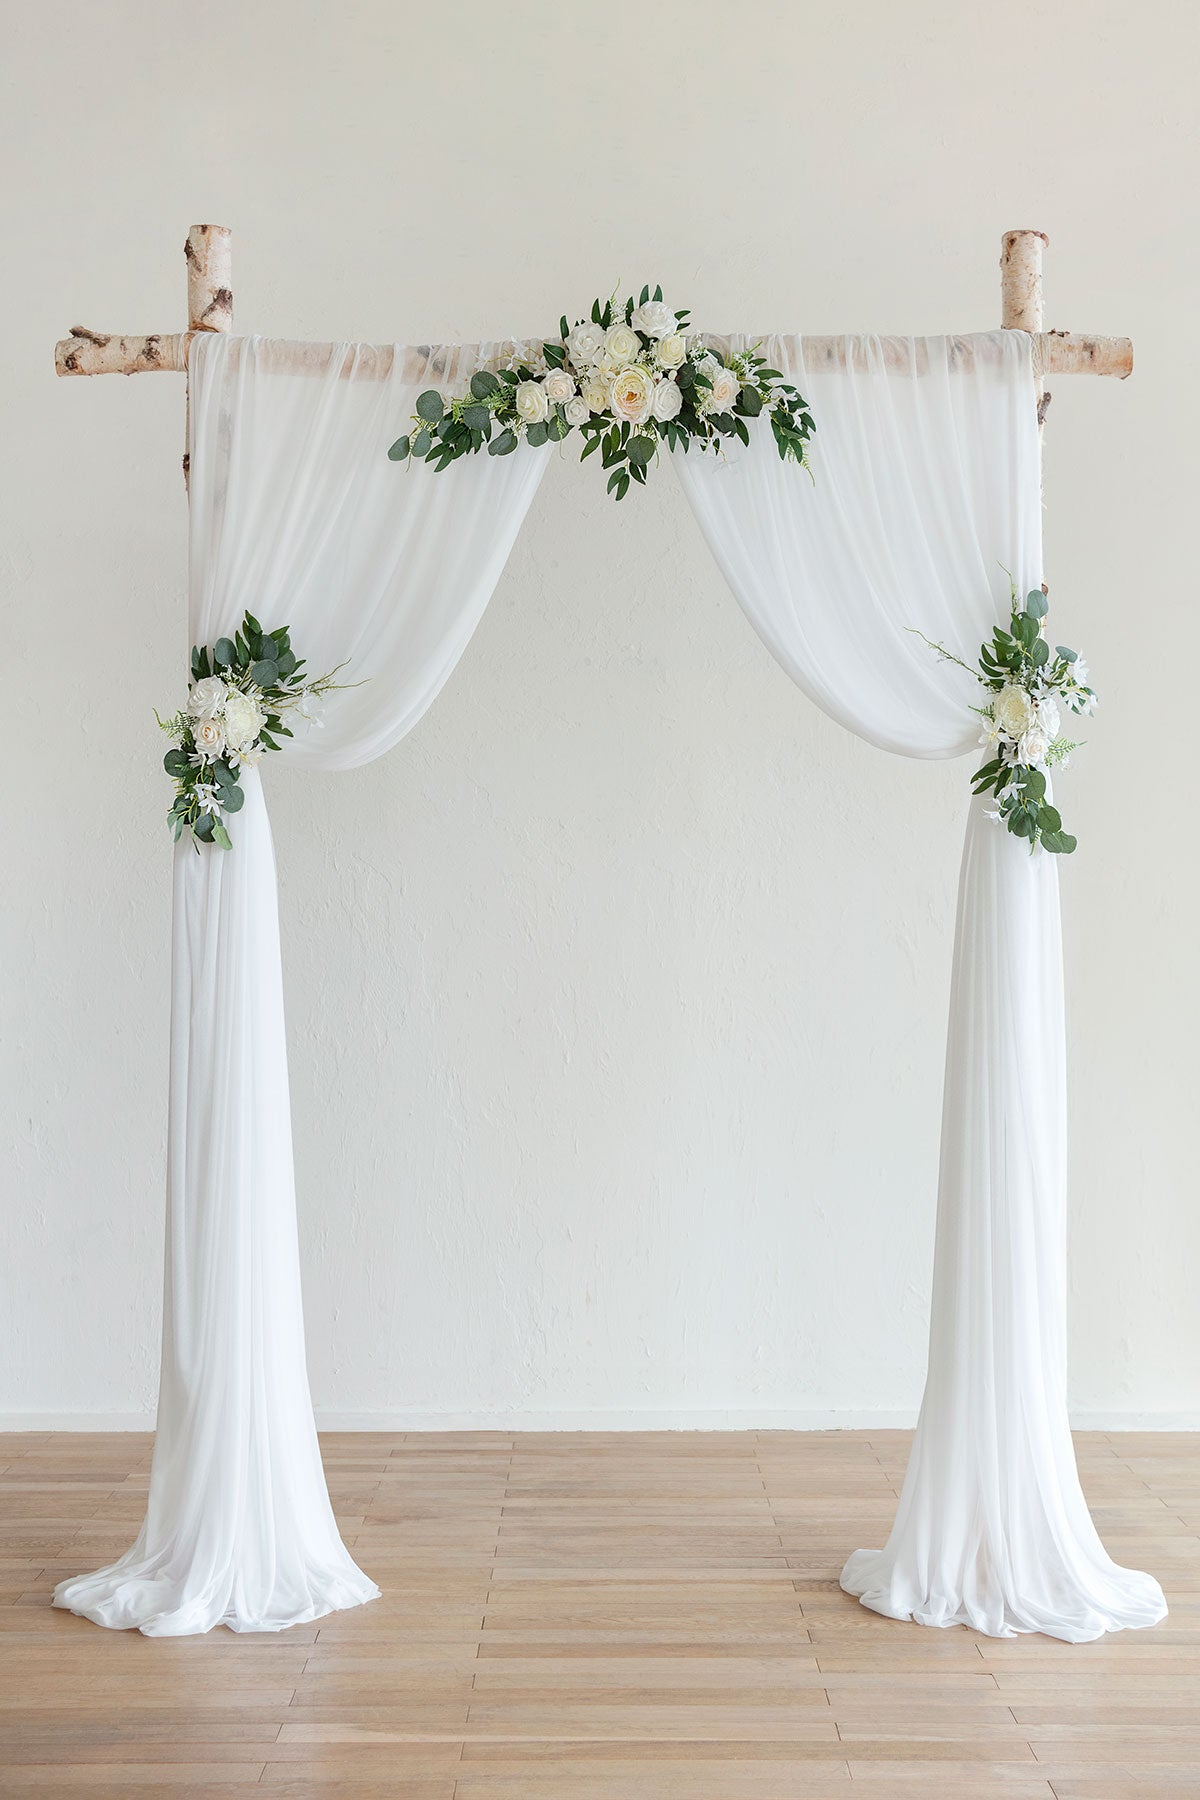 Flower Arch Décor with Sheer Drape (Set of 3) - Ivory